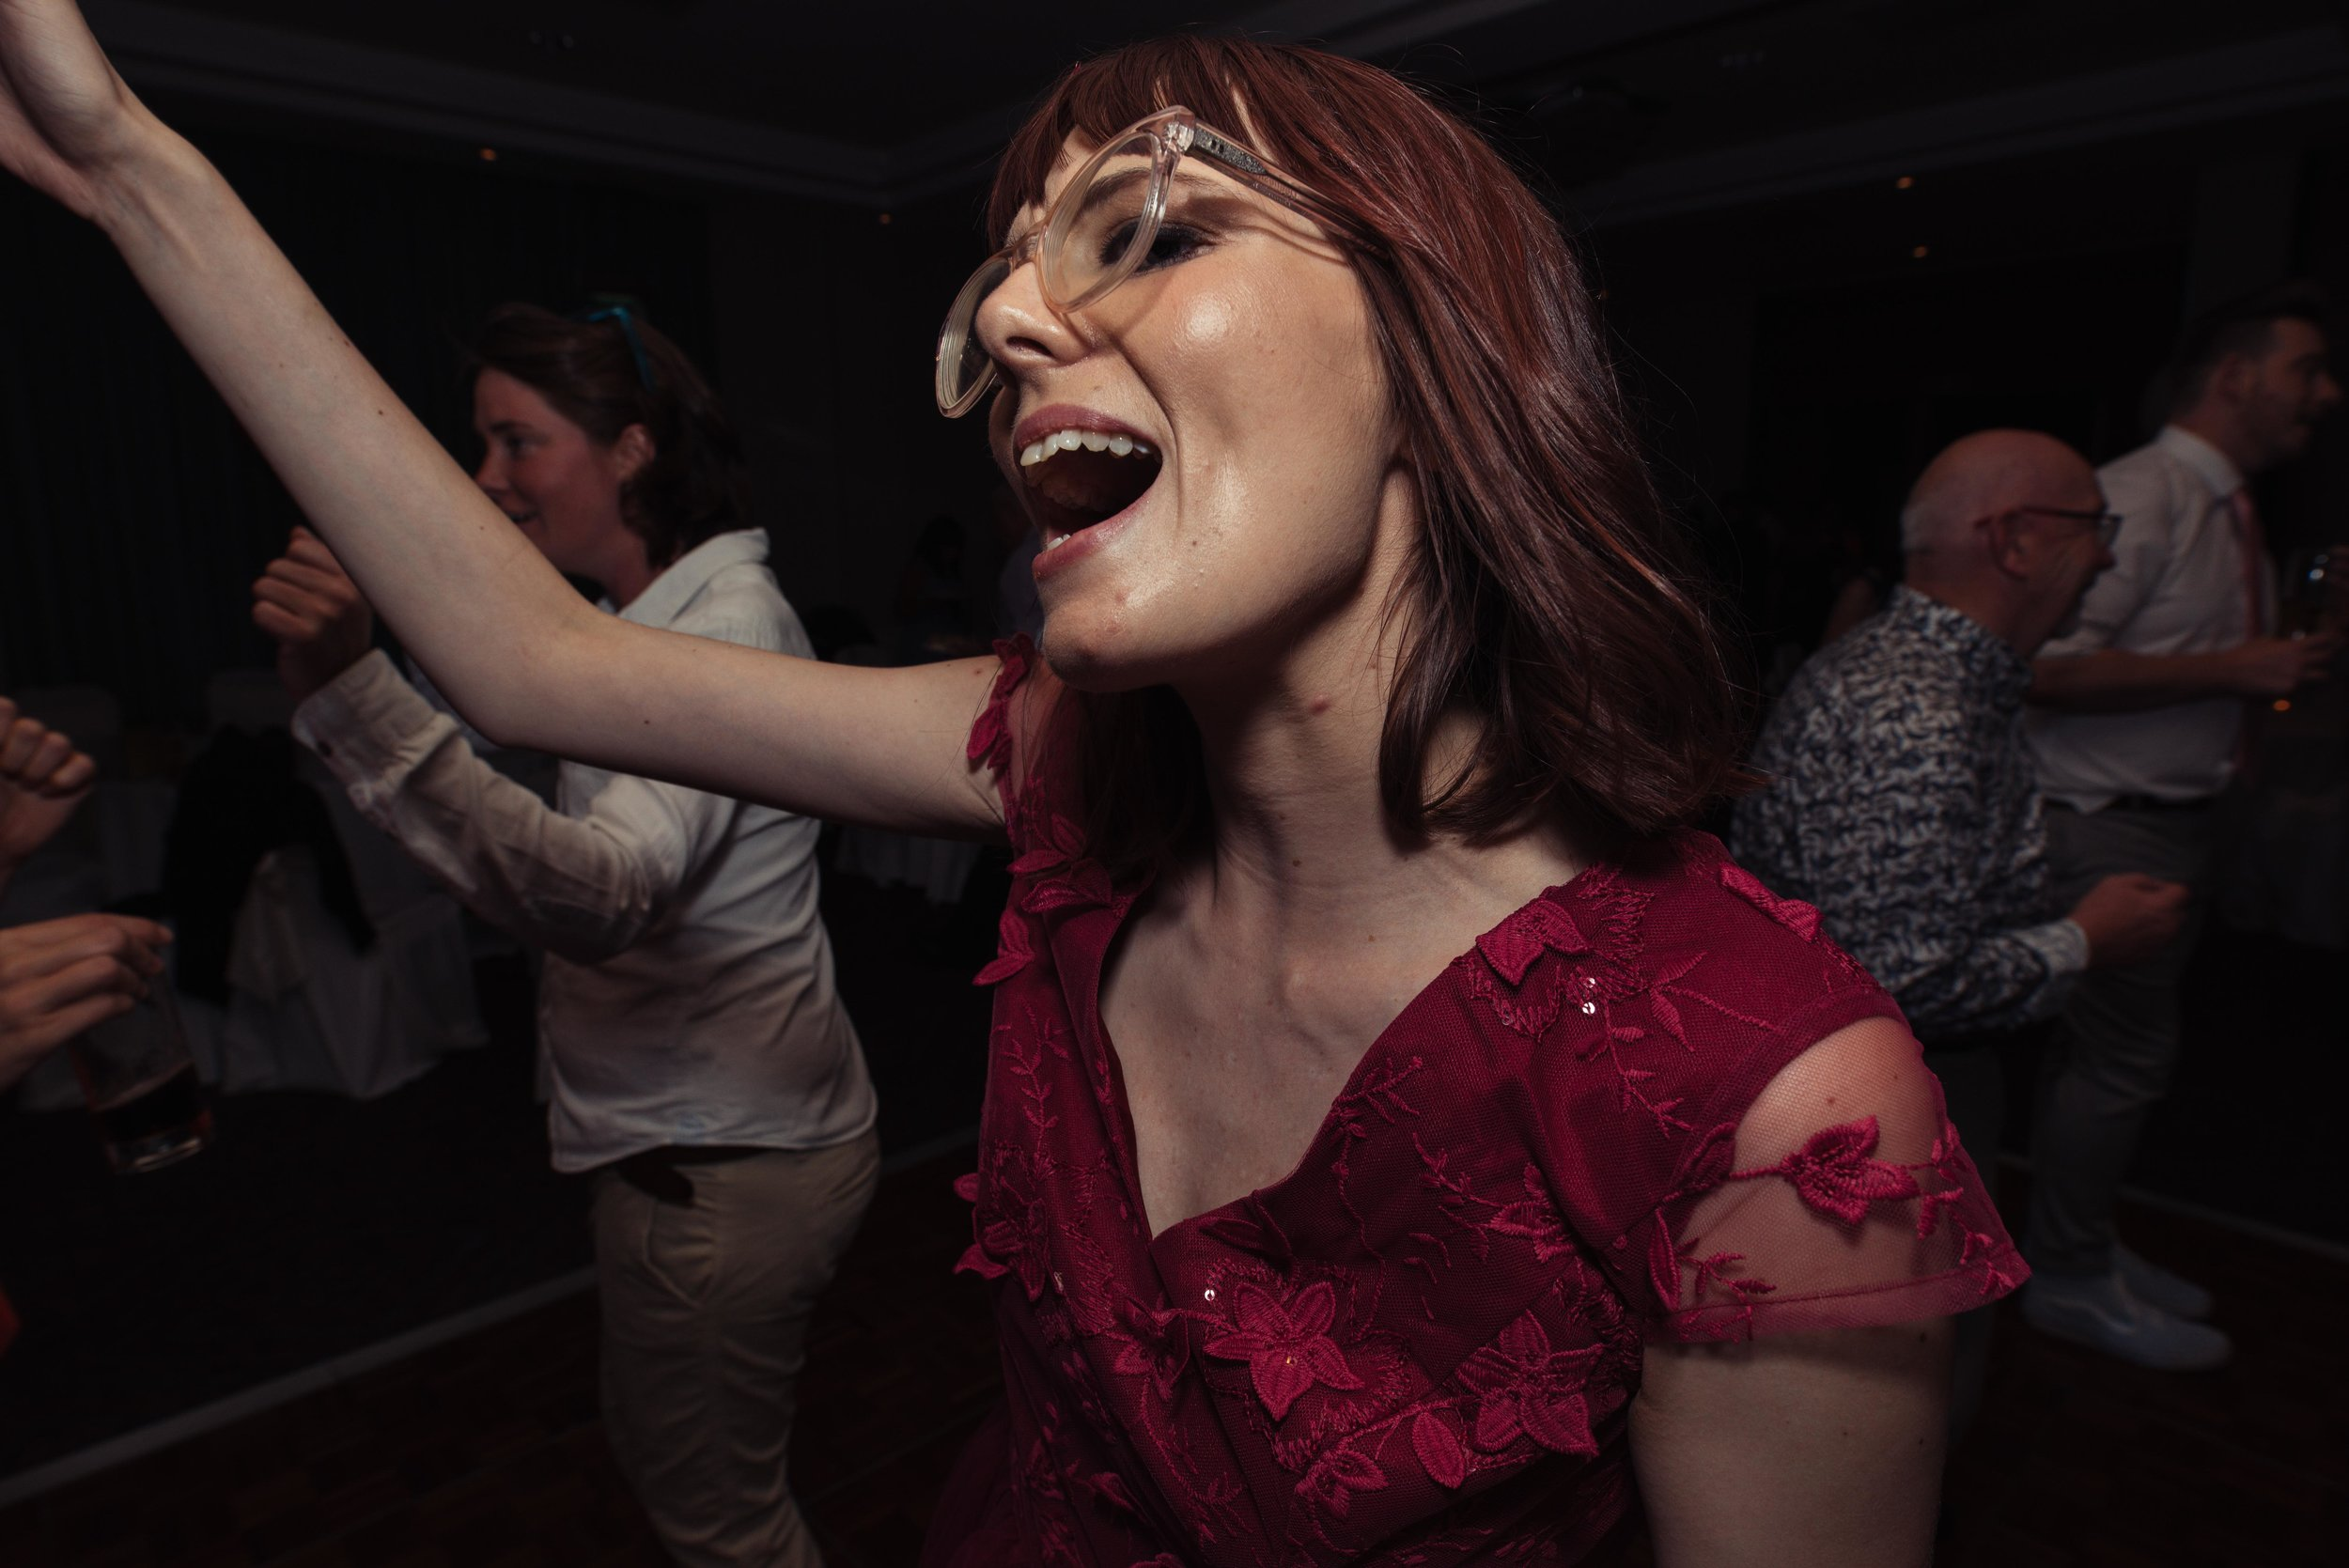 A bridesmaid lets her hair down on the dance floor